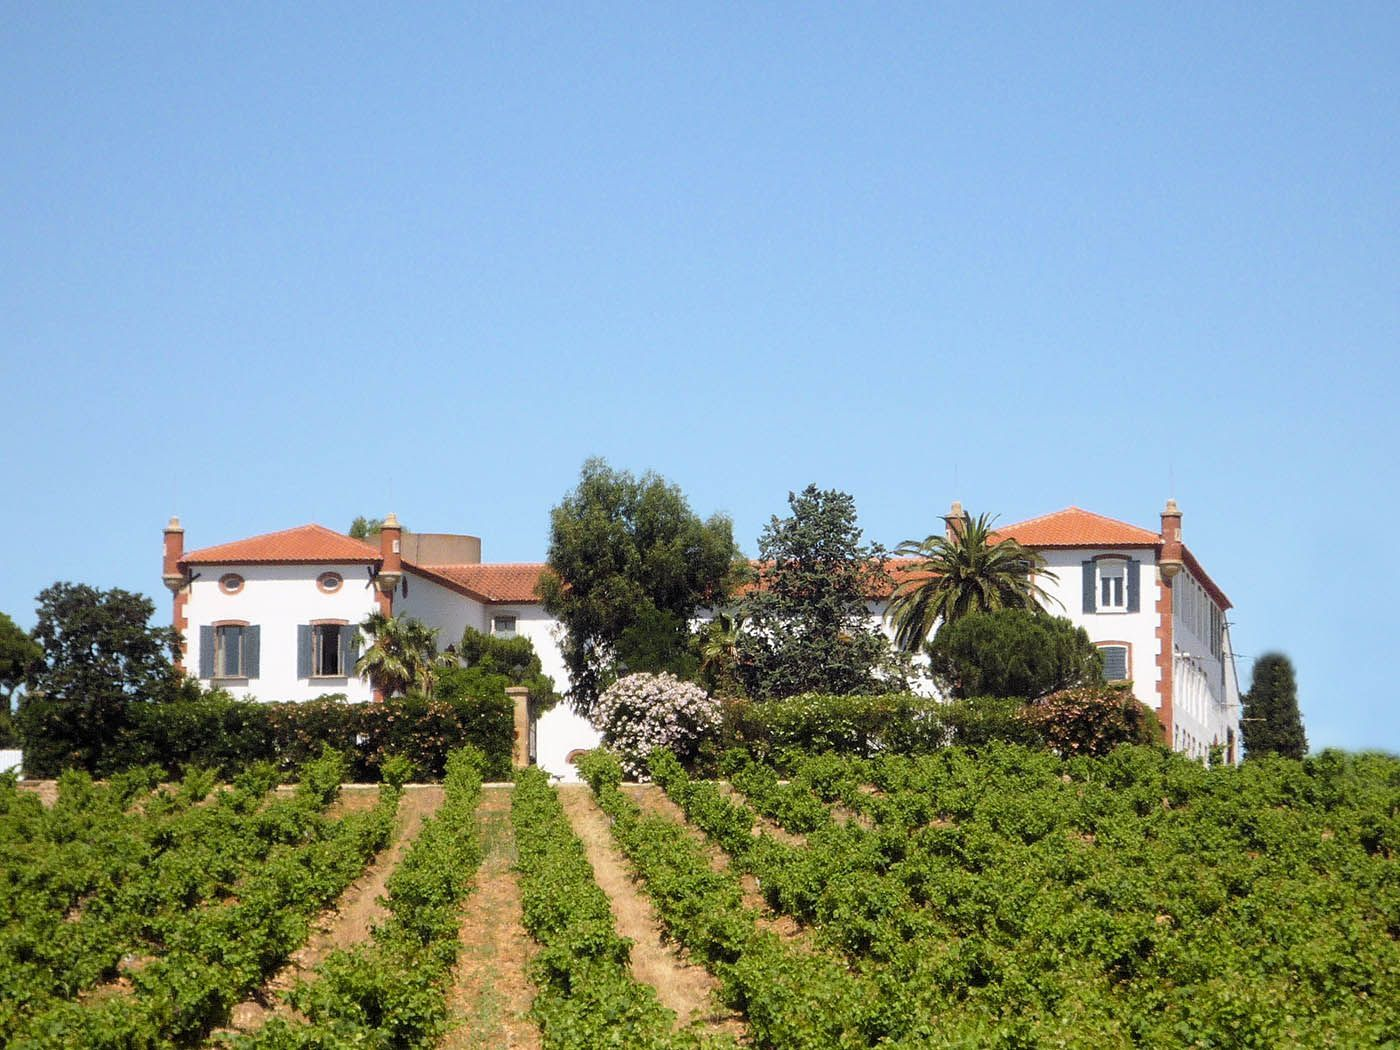 Viticultural property's view